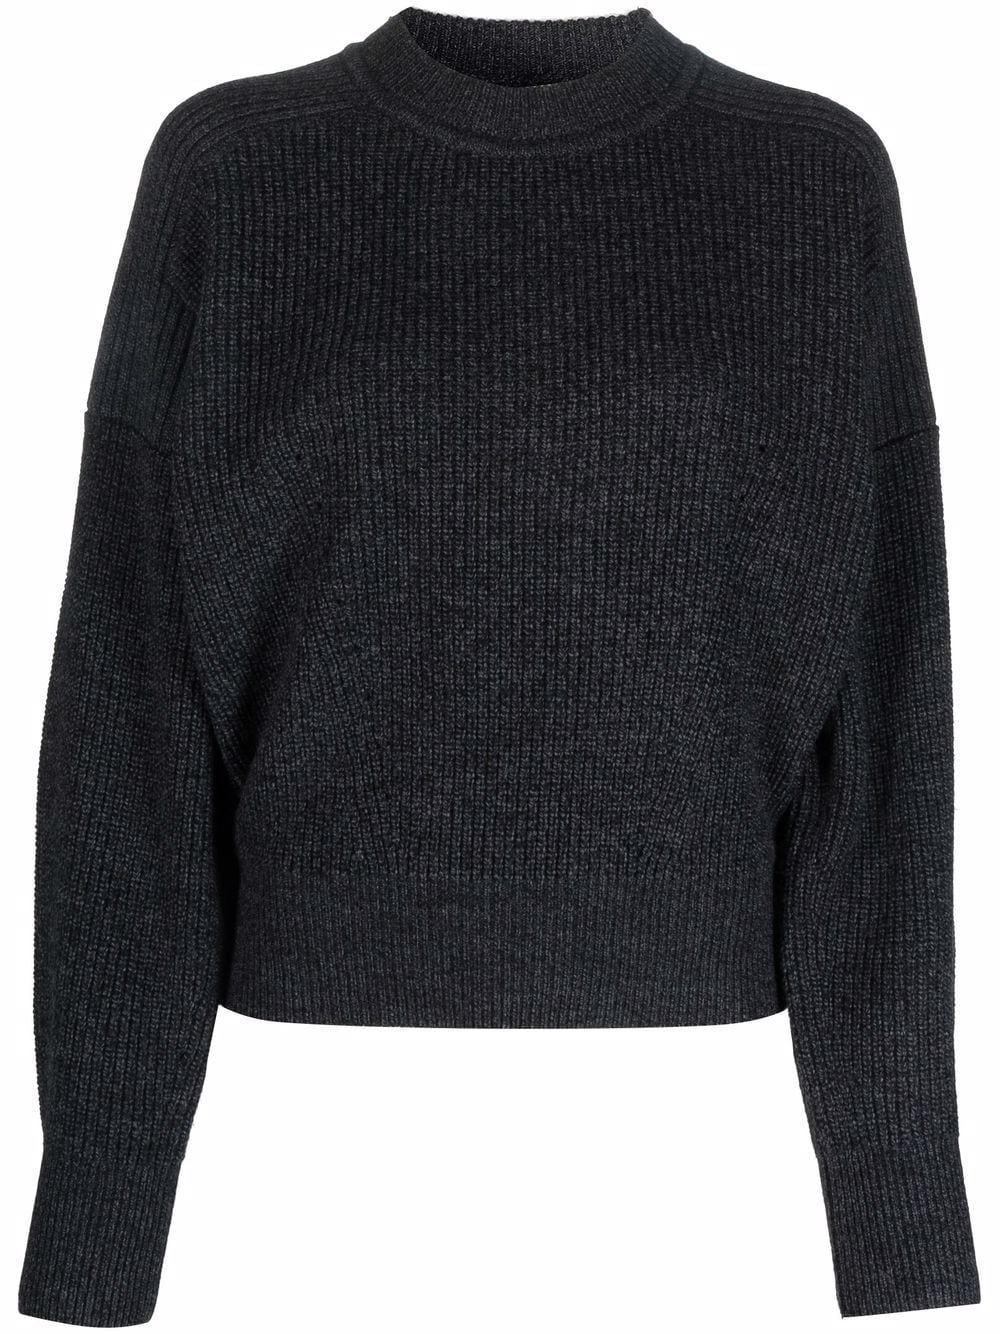 <p class='small-title'>ISABEL MARANT ÉTOILE</p>Ribbed Knit Jumper